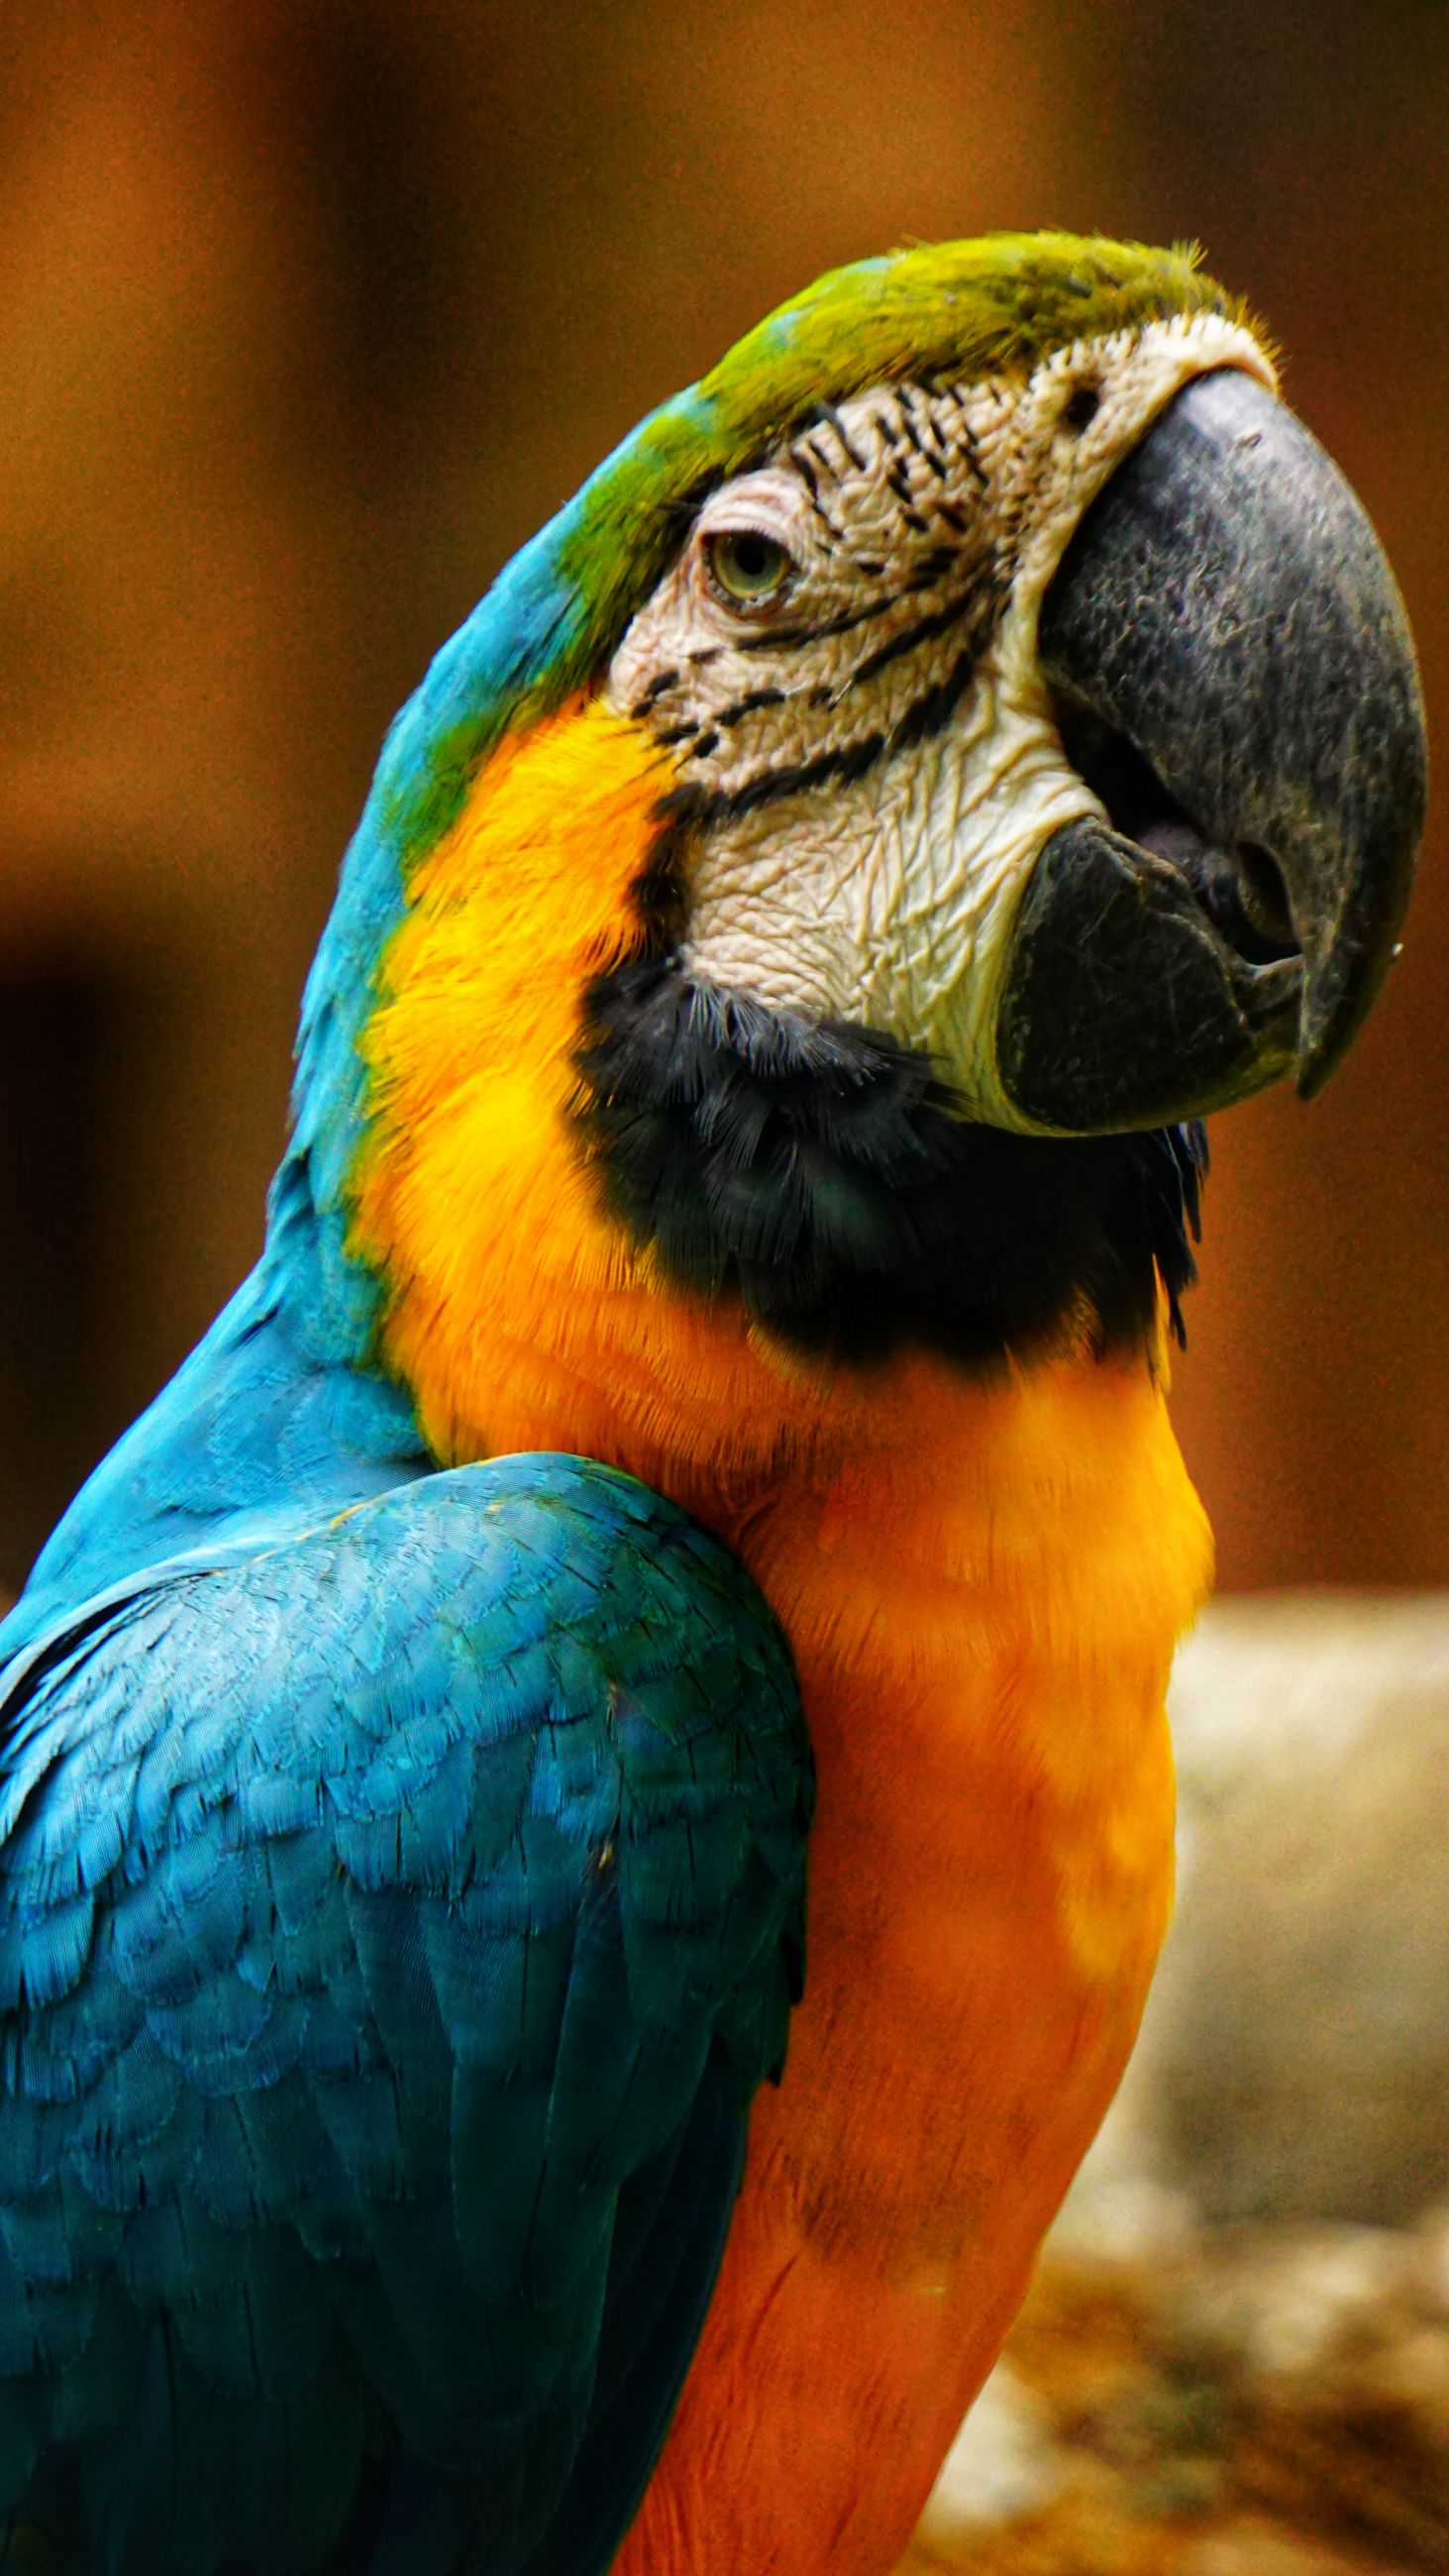 bird, animal themes, parrot, animal wildlife, vertebrate, animal, animals in the wild, macaw, focus on foreground, gold and blue macaw, close-up, one animal, no people, beak, day, nature, multi colored, beauty in nature, outdoors, animal body part, animal head